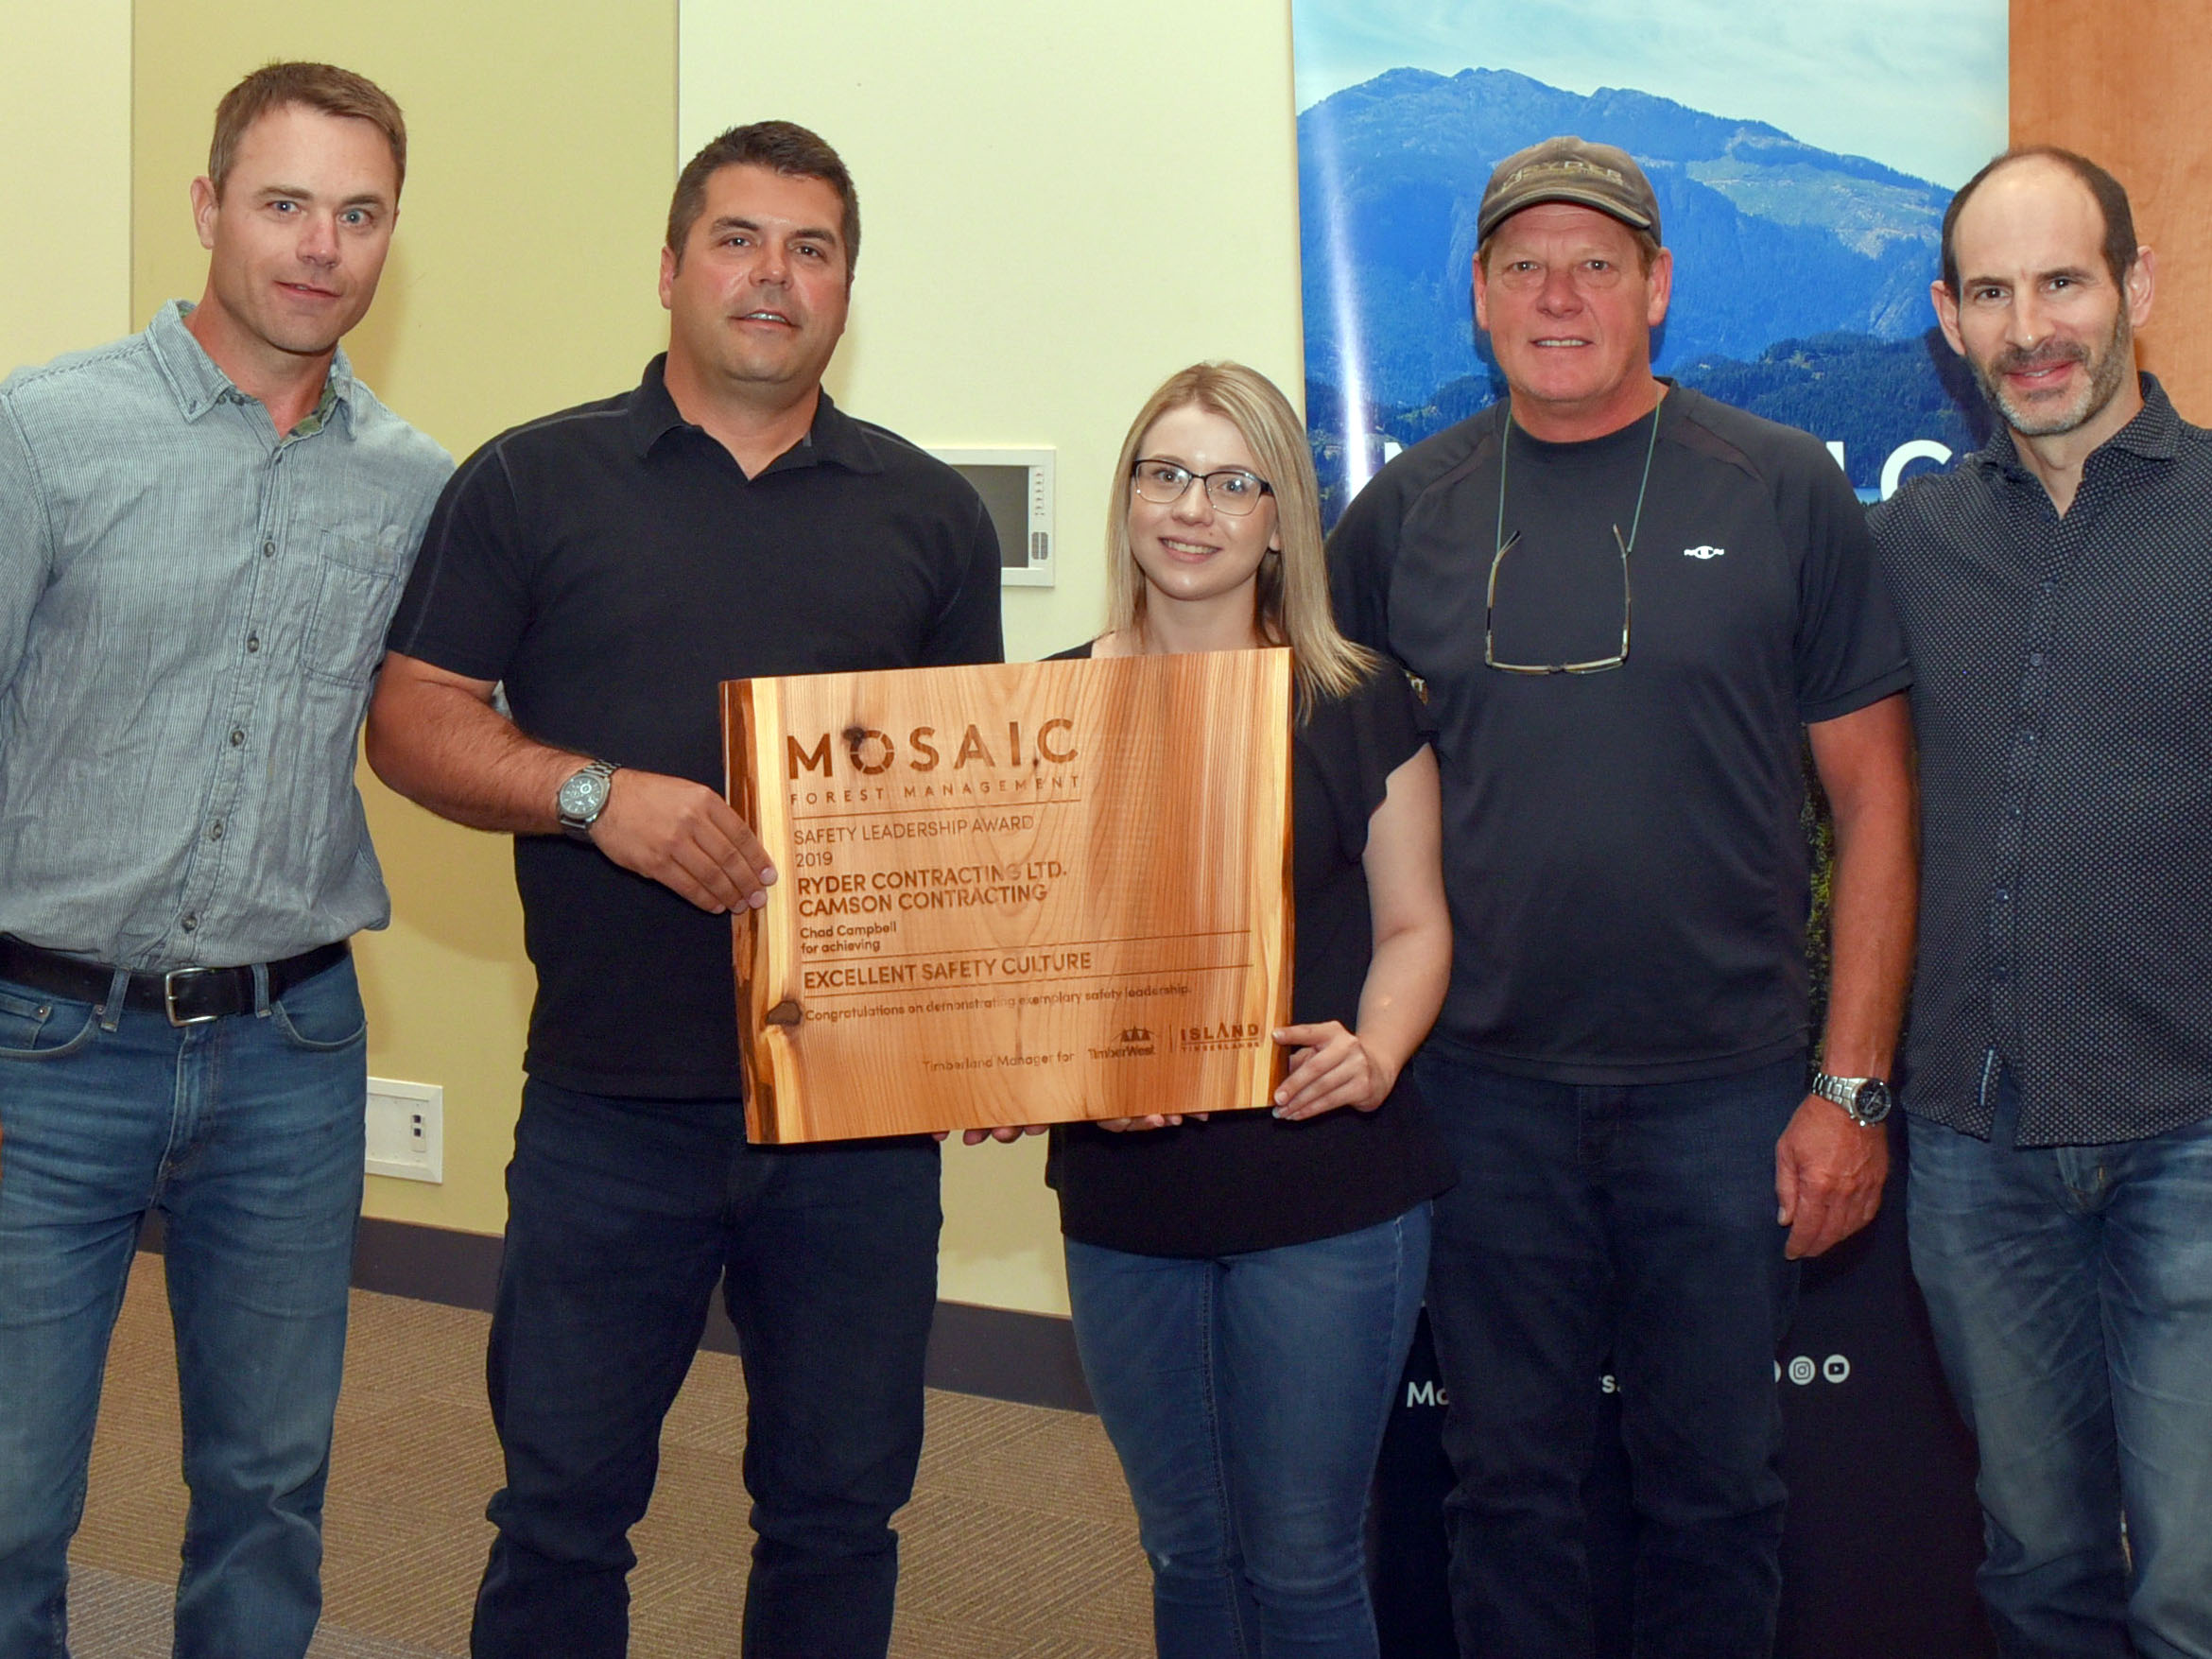 (l to r) Mosaic Forest Management's General Manager, Operations, Central Island; Chad Campbell, Karlie Ward and Bill Chadwick, of Ryder Contracting Ltd./Camson Contracting; and Jeff Zweig, Mosaic's President and Chief Executive Officer.